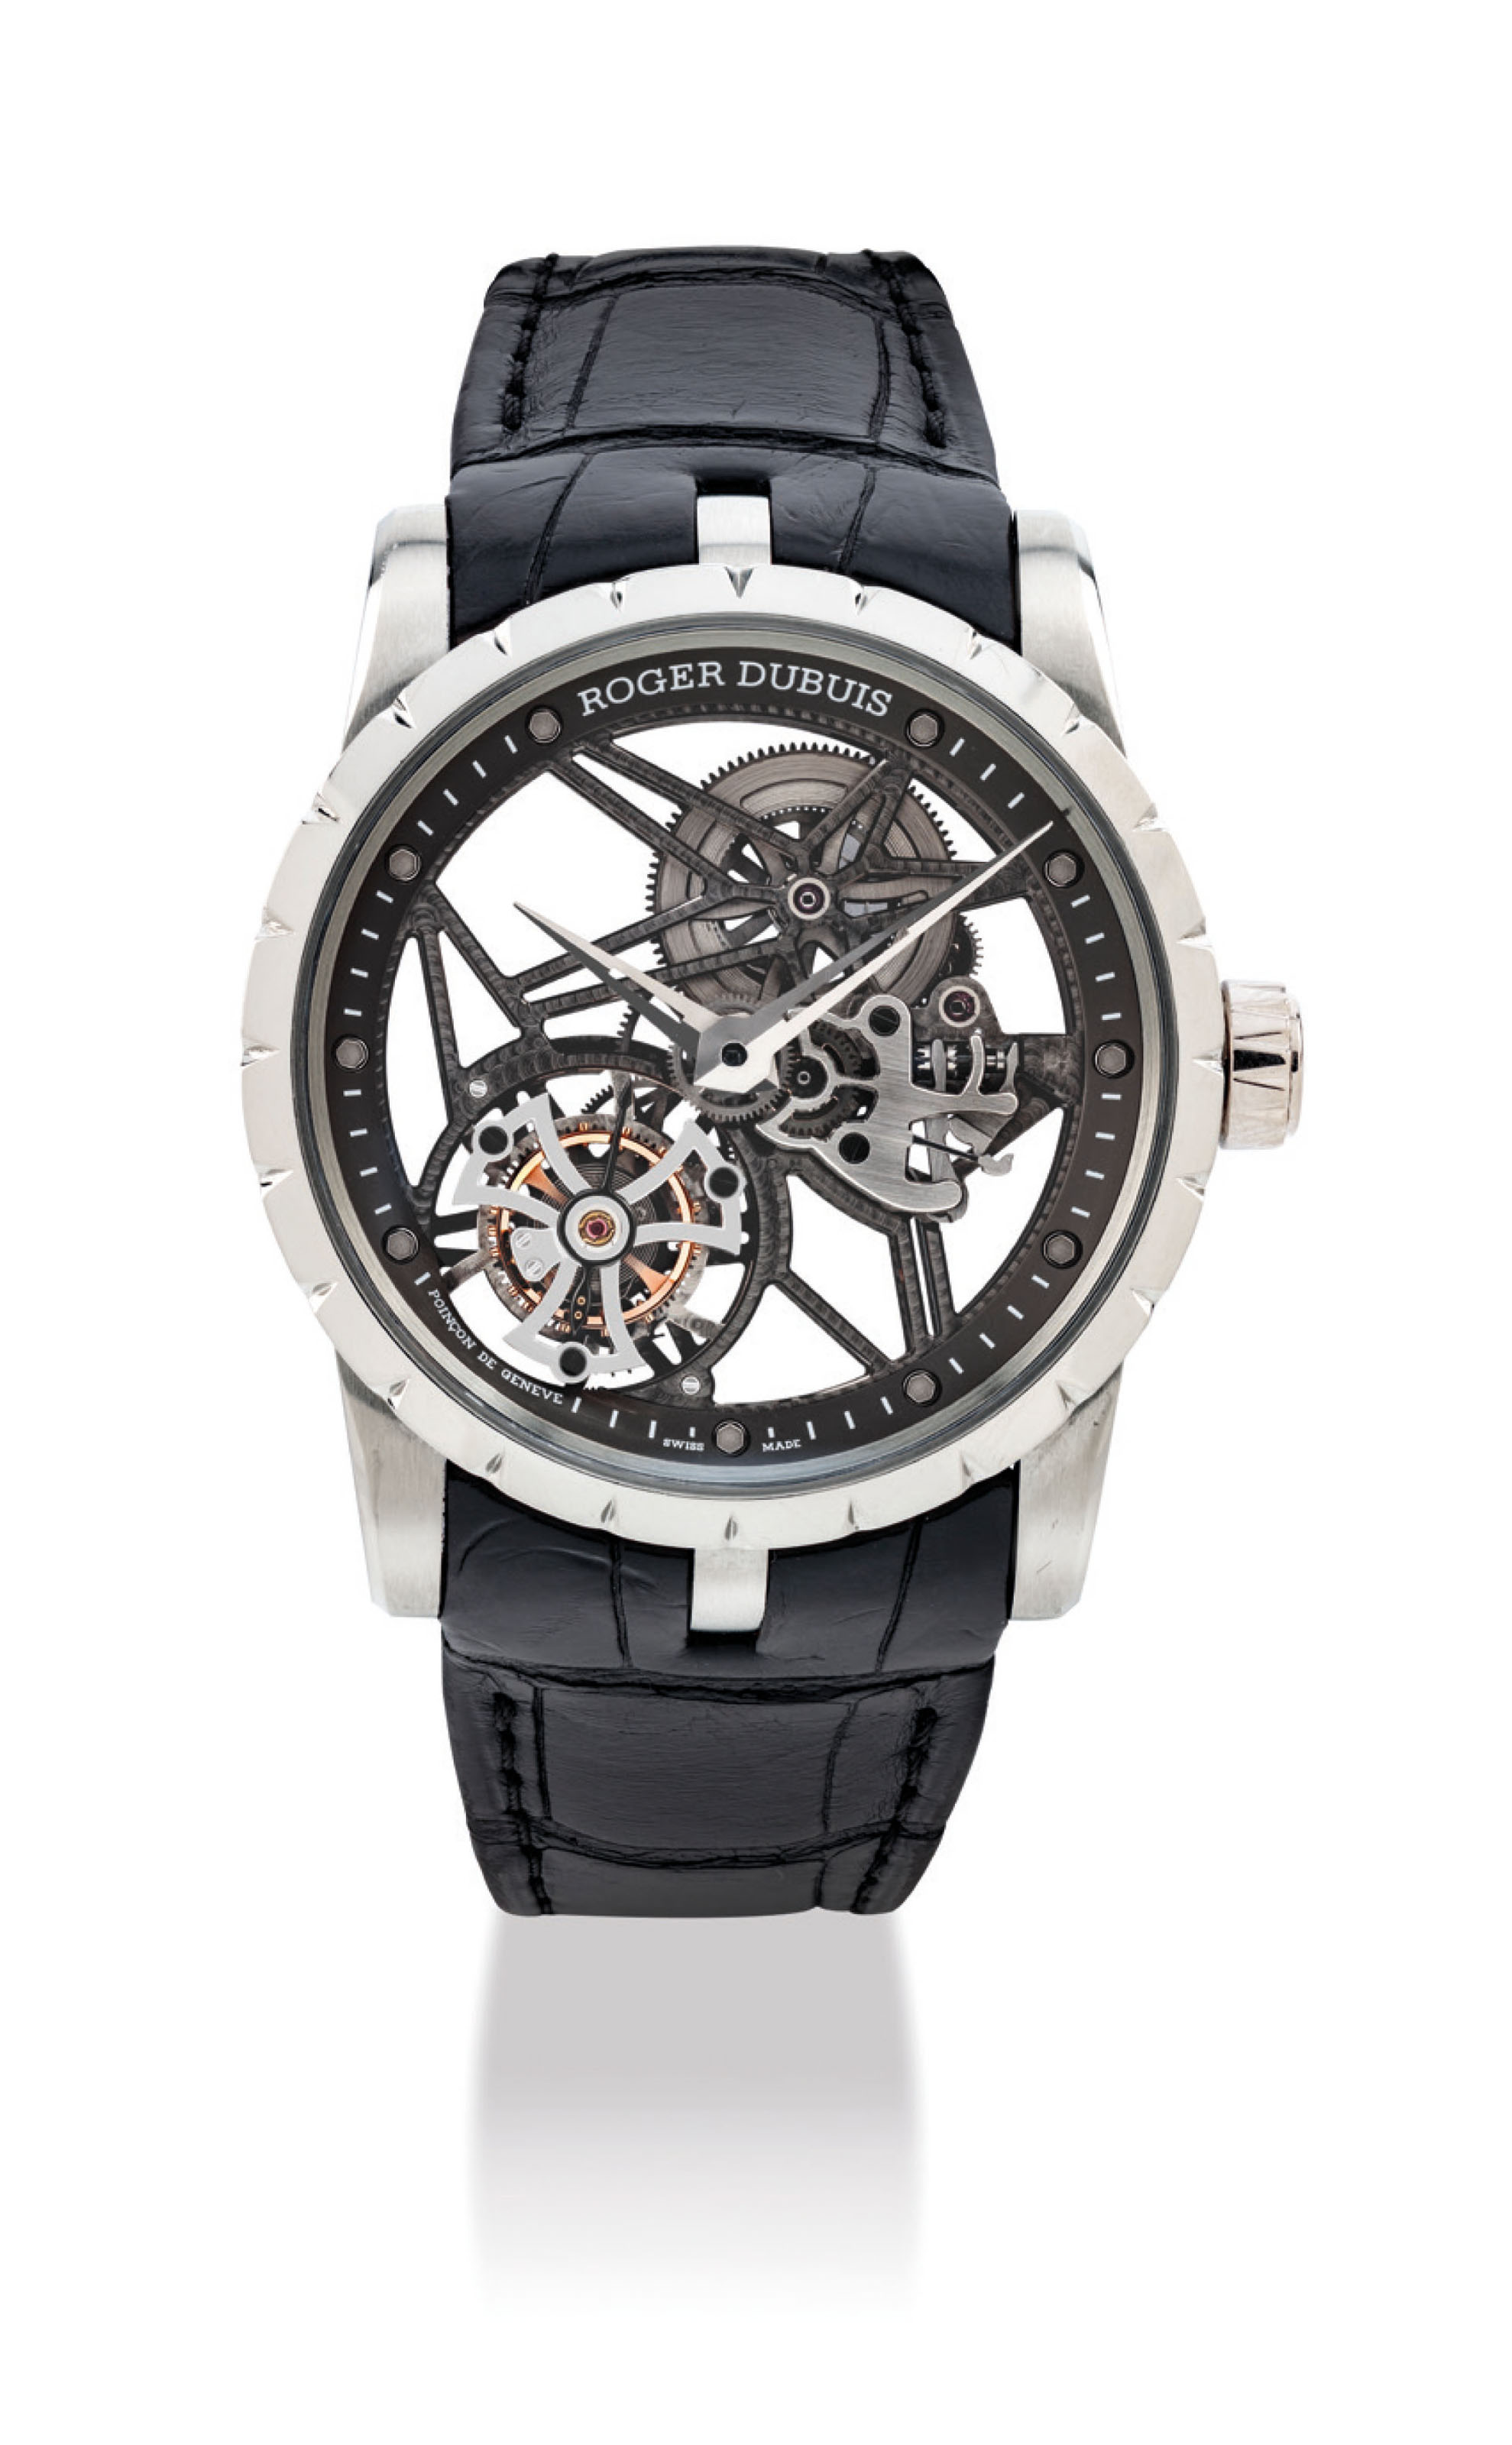 ROGER DUBUIS. A VERY FINE AND RARE 18K WHITE GOLD SKELETONISED TOURBILLON WRISTWATCH